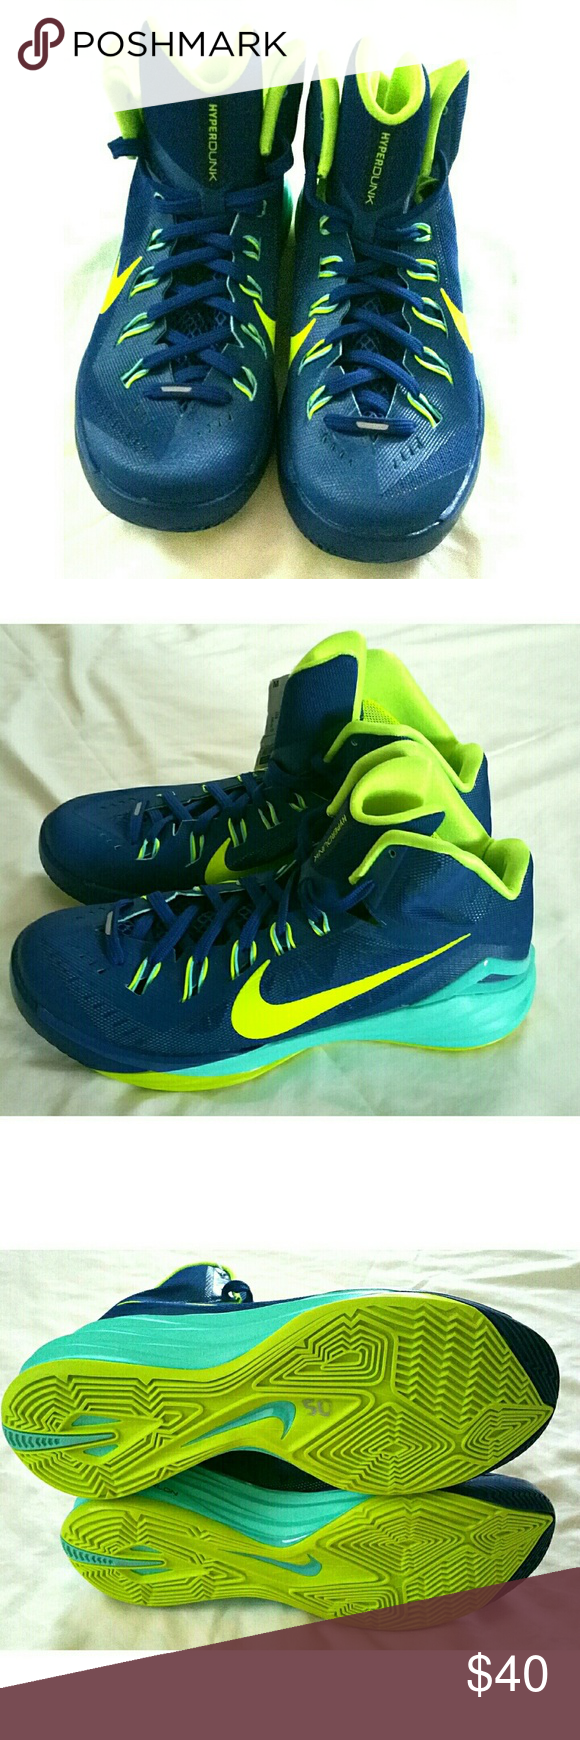 sale retailer d309f 799ca BRAND NEW- Nike Hyperdunk Lunarlon, Size 9   Blue yellow, Shoes sneakers  and Nike shoe